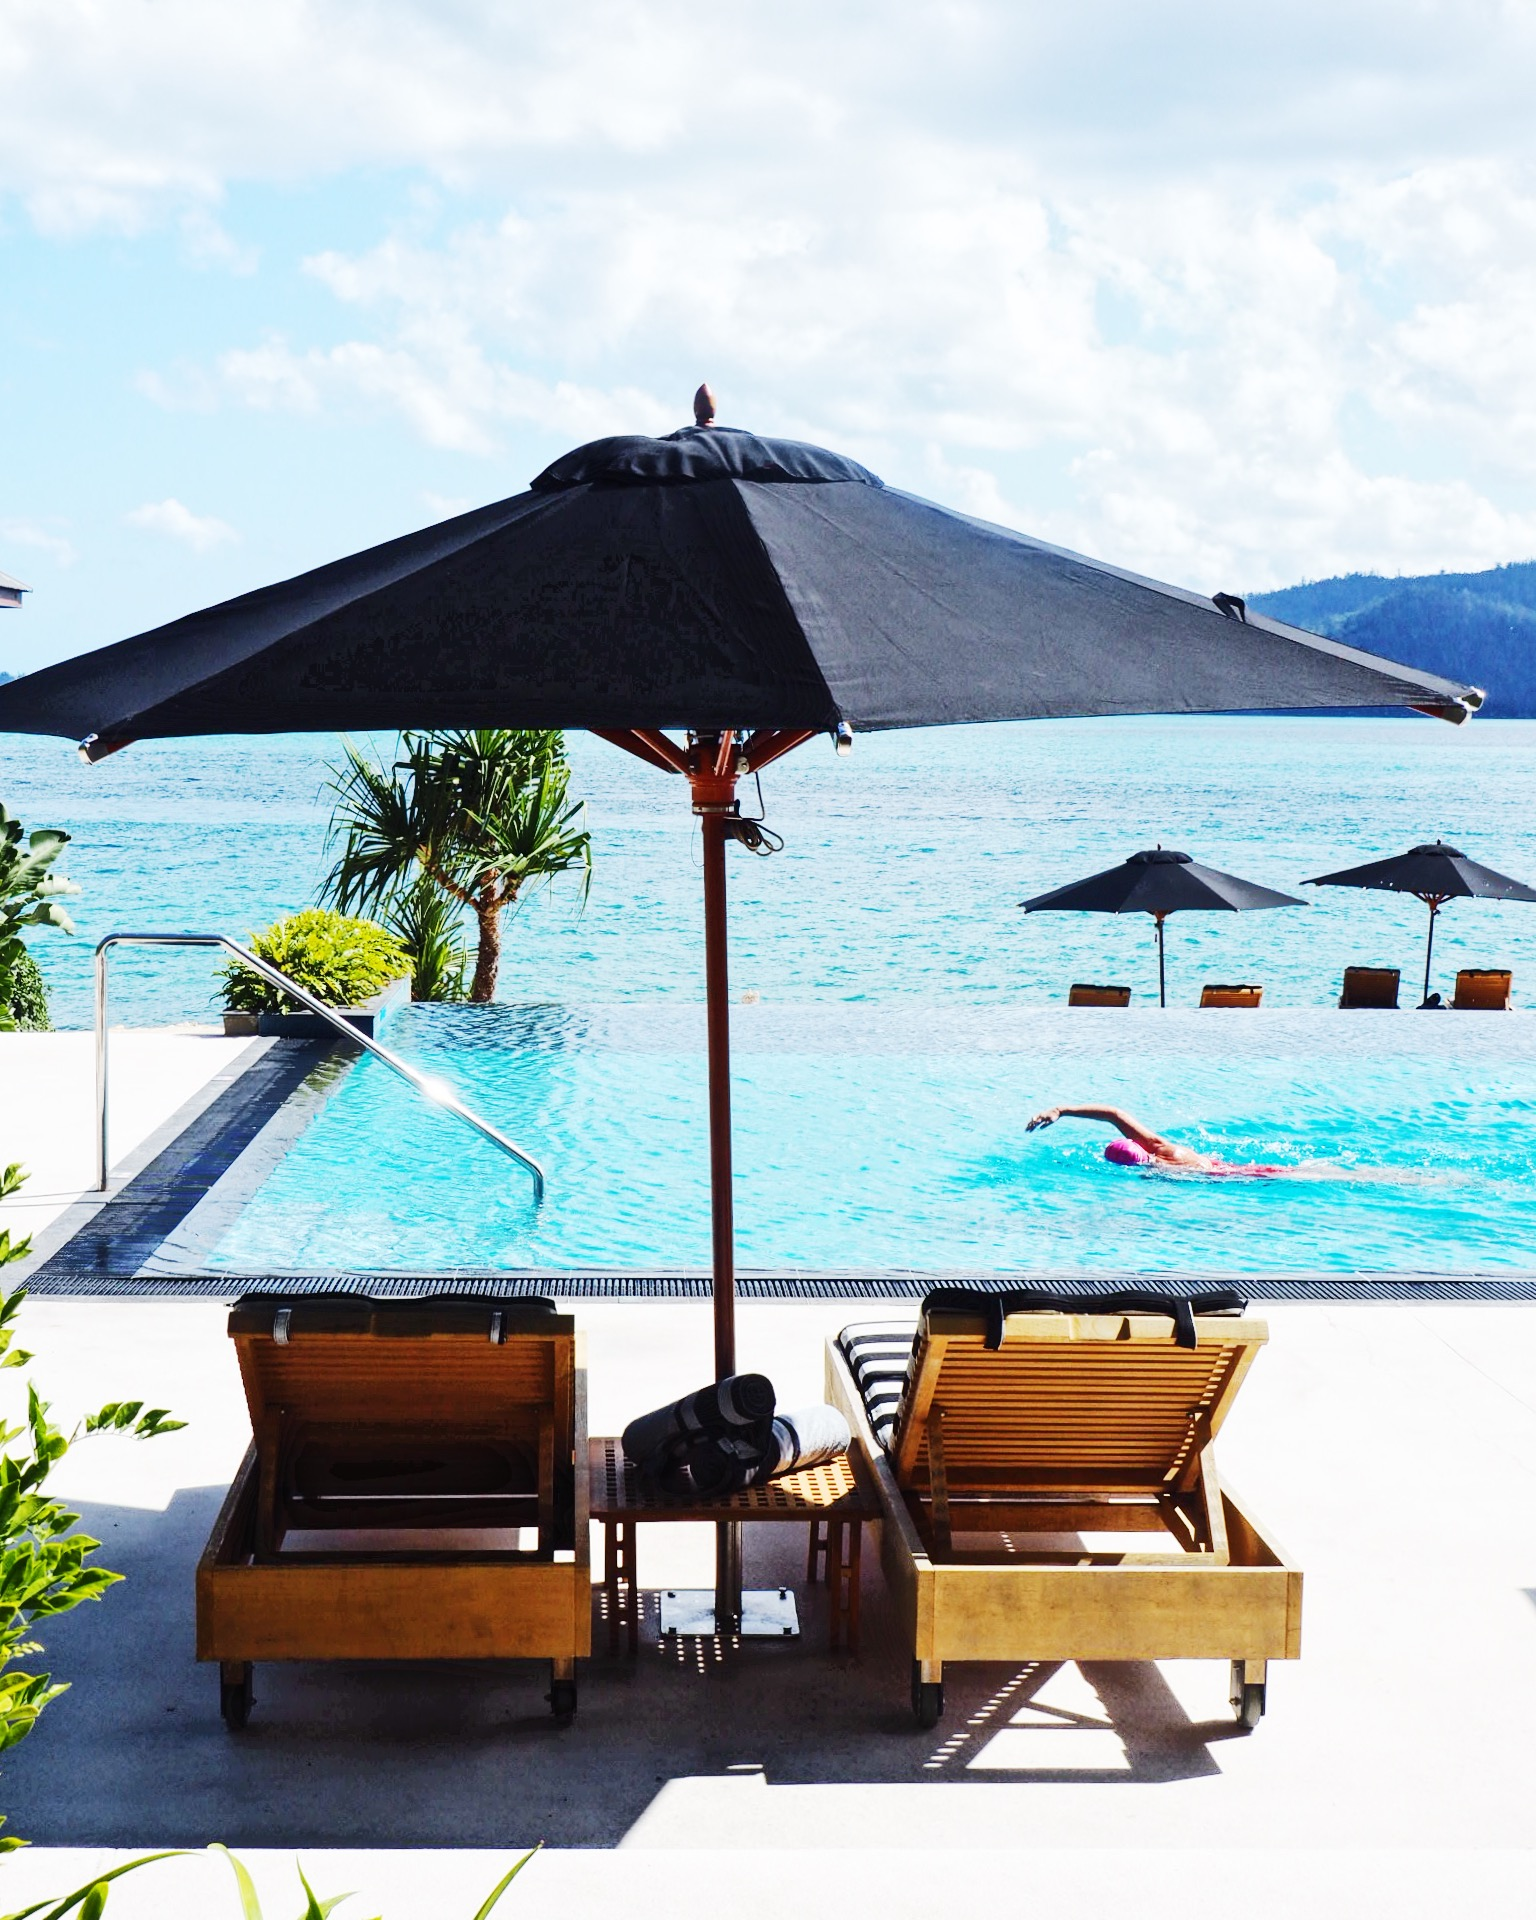 POSTCARD FROM QUALIA - Hamilton Island, QLD, Australia.